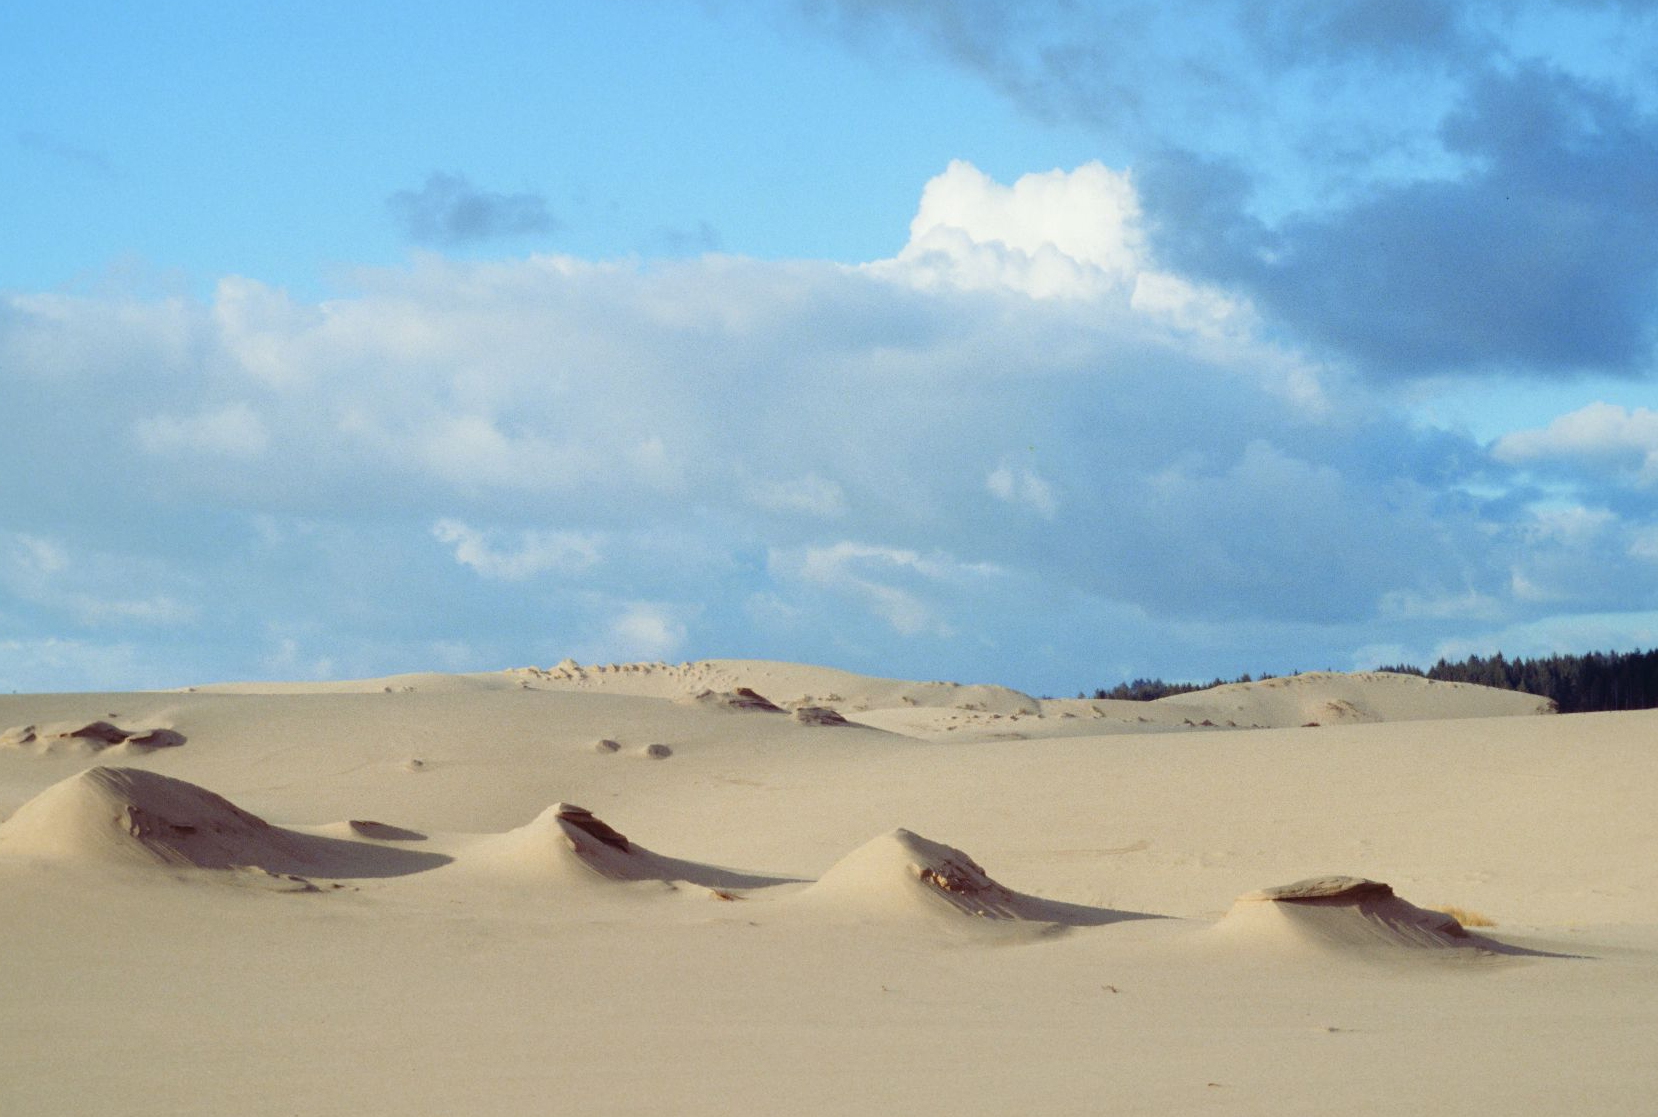 The Umpqua Dunes unit of the proposed  Oregon  Dunes Wilderness in the Oregon Dunes National Recreation Area in Lane, Douglas and Coos counties.  Photo: Dominic DeFazio, first appearing in  Oregon Wild: Endangered Forest Wilderness .